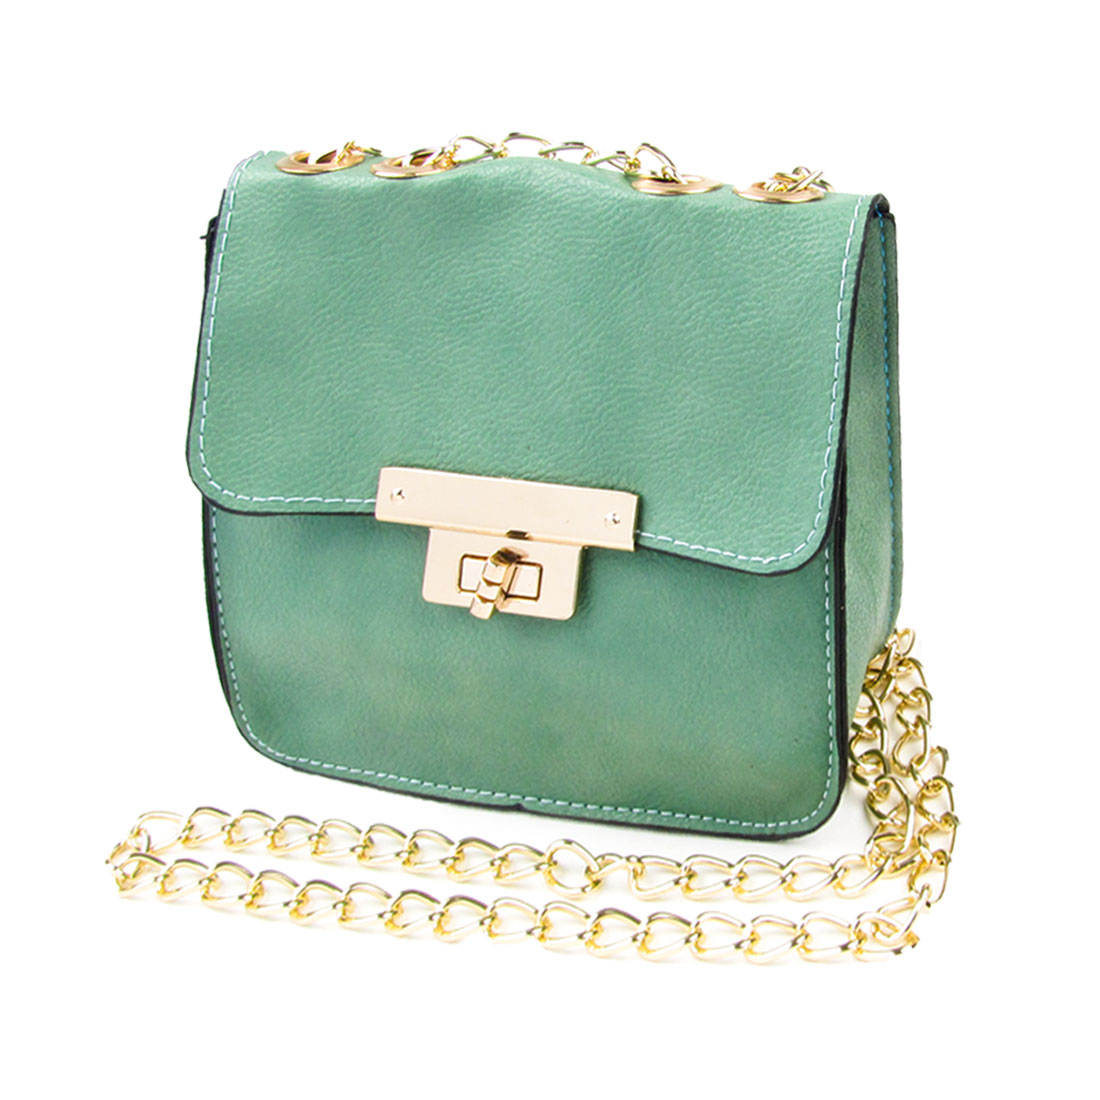 Lady Green Litchi Pattern Faux Leather Turn Lock Clasp Crossbody Shoulder Bag